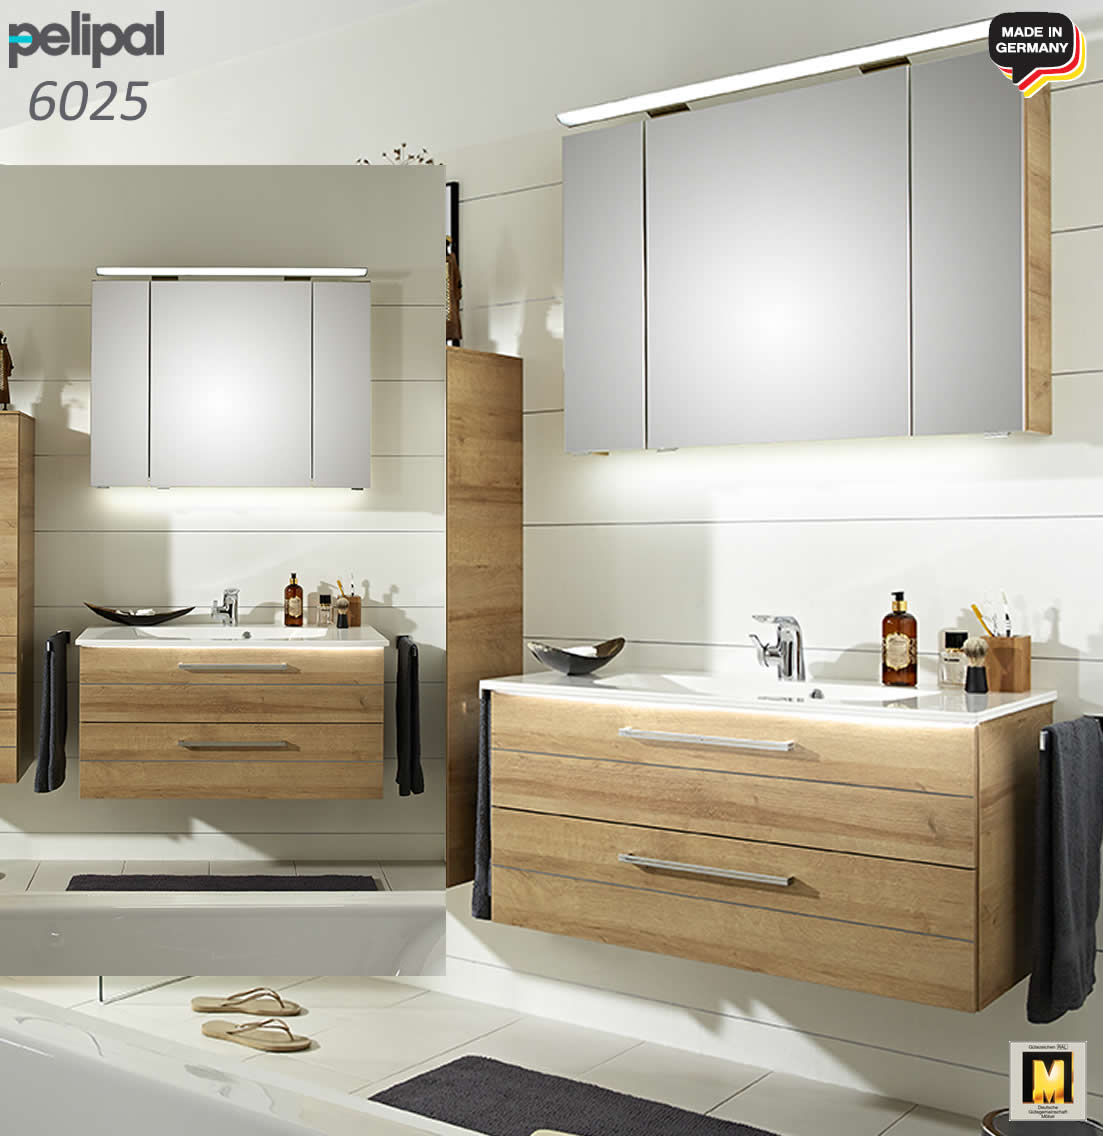 pelipal solitaire 6025 badm bel set 97 cm v2 2 impuls home. Black Bedroom Furniture Sets. Home Design Ideas